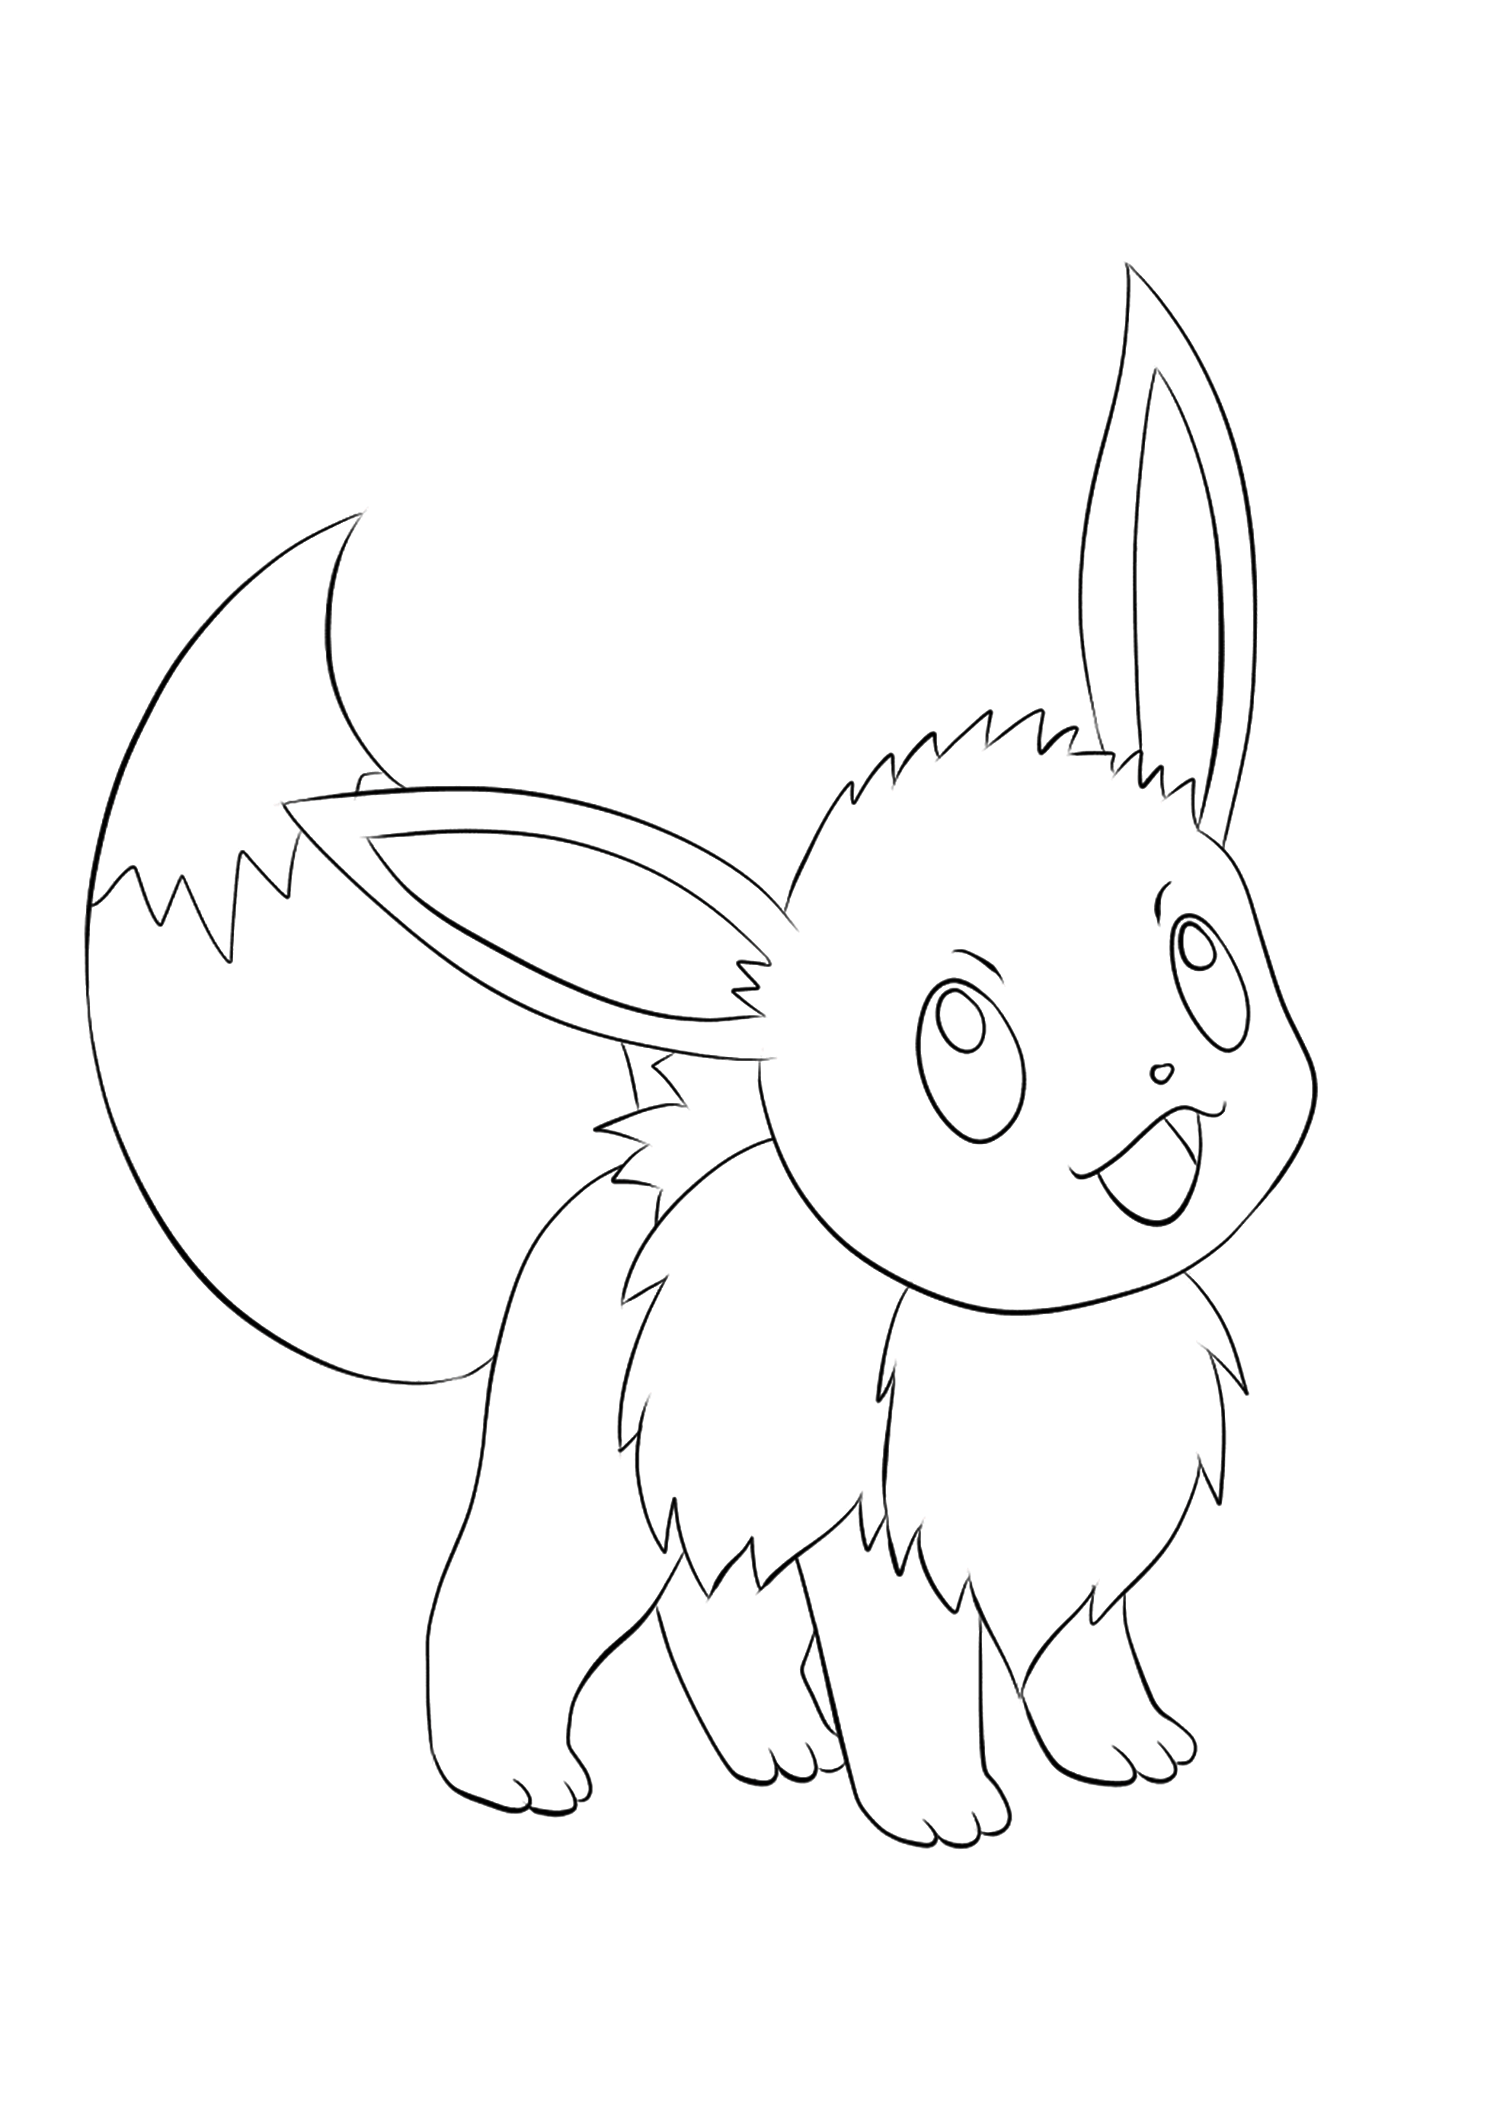 Evoli No 133 Pokemon De Generation I Tous Les Coloriages